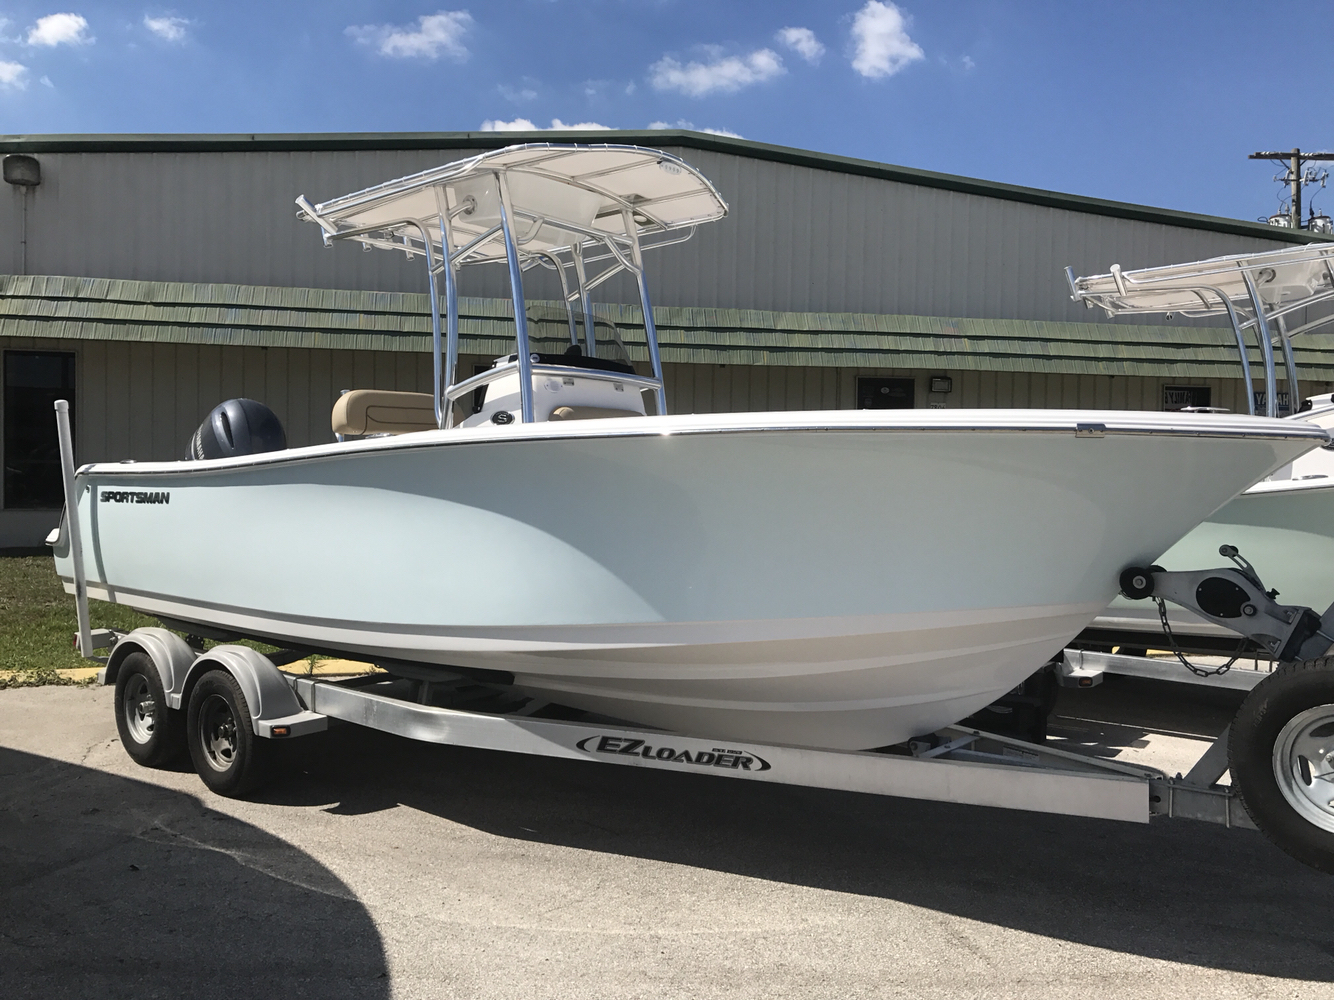 2017 Sportsman Boats 231 22 Foot 2017 Motor Boat In